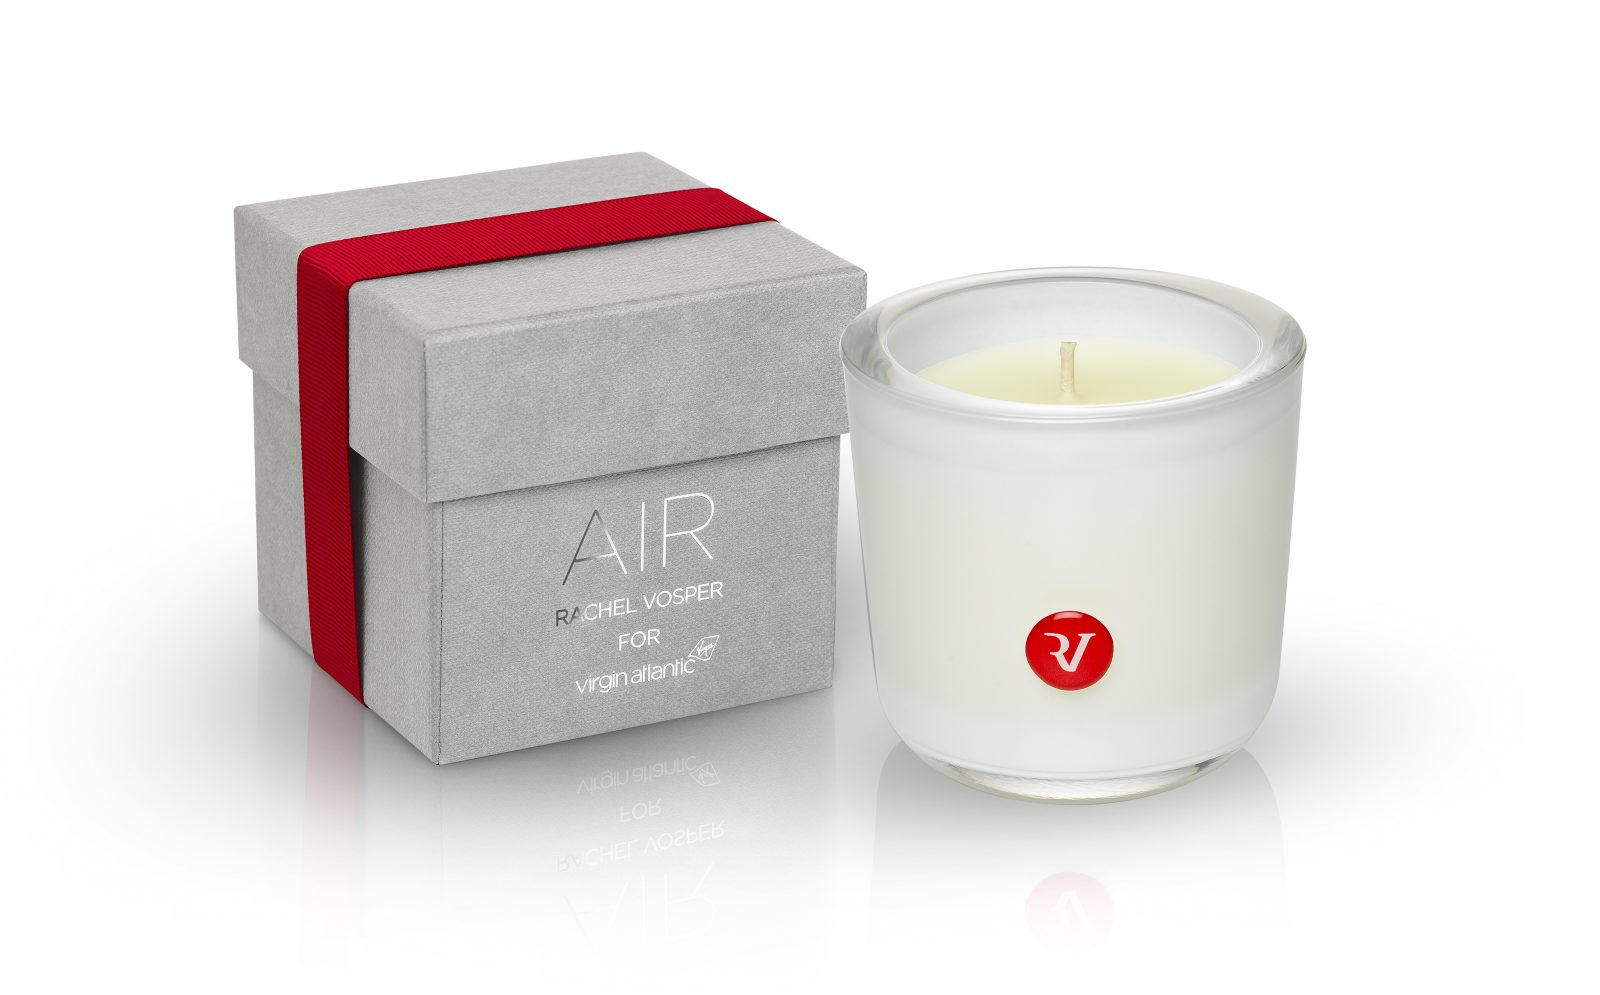 Virgin Atlantic scented candle